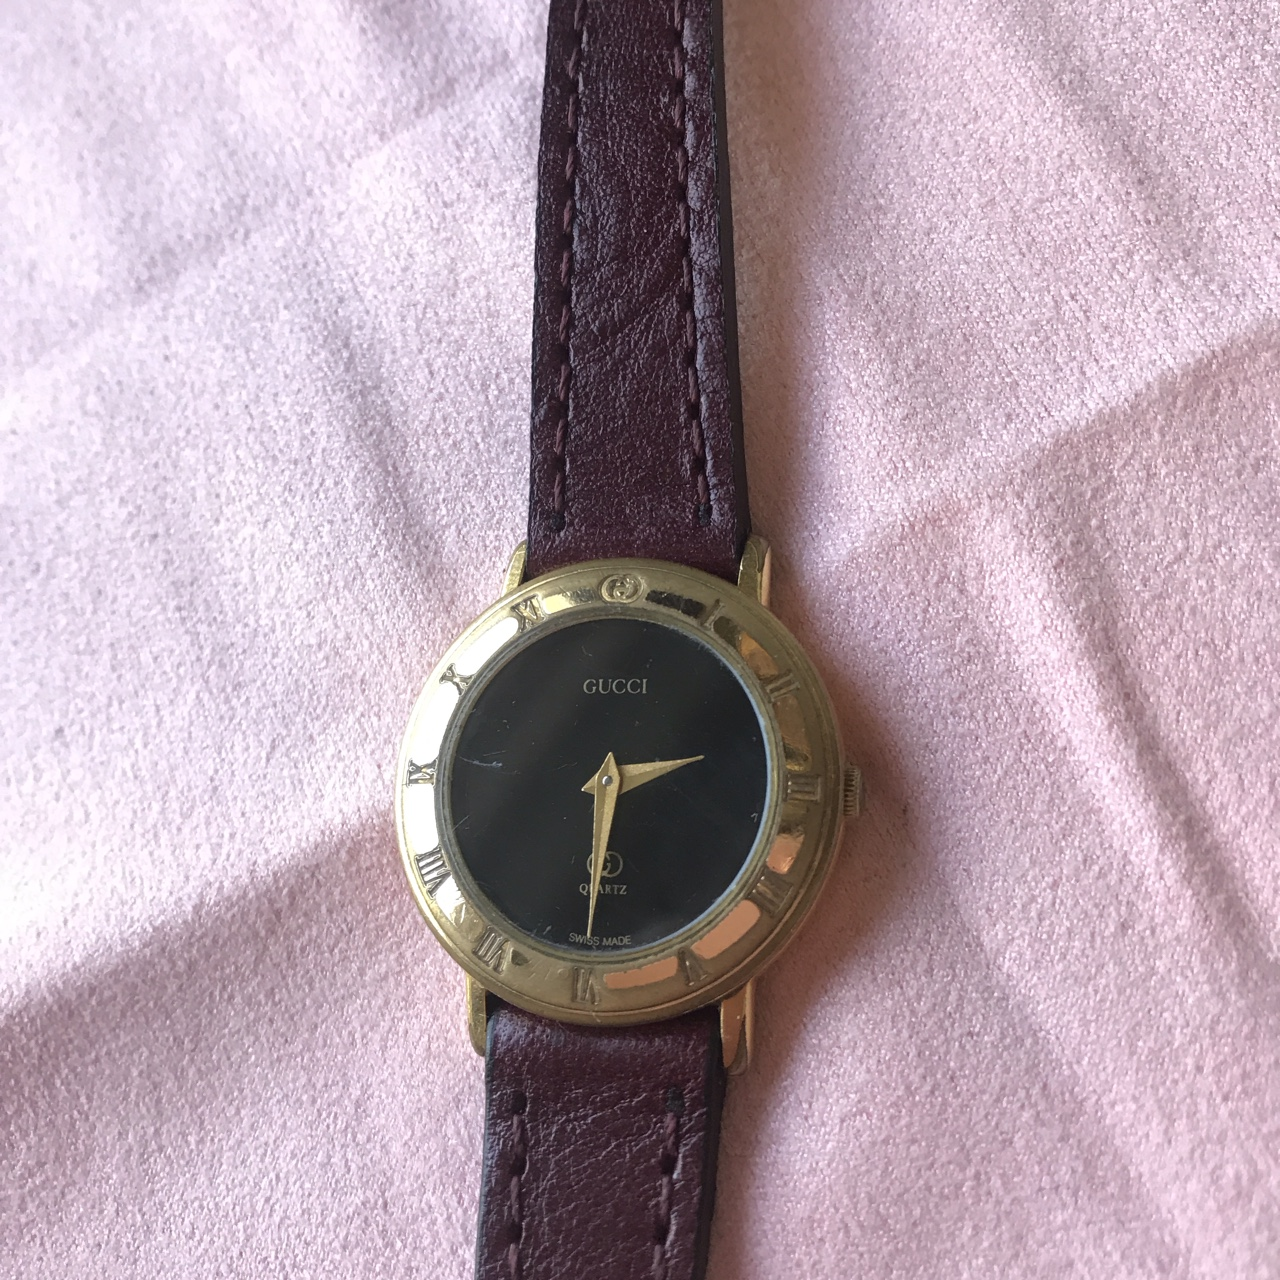 Ladies Gucci watch 3001L. Has a thin replacement , Depop